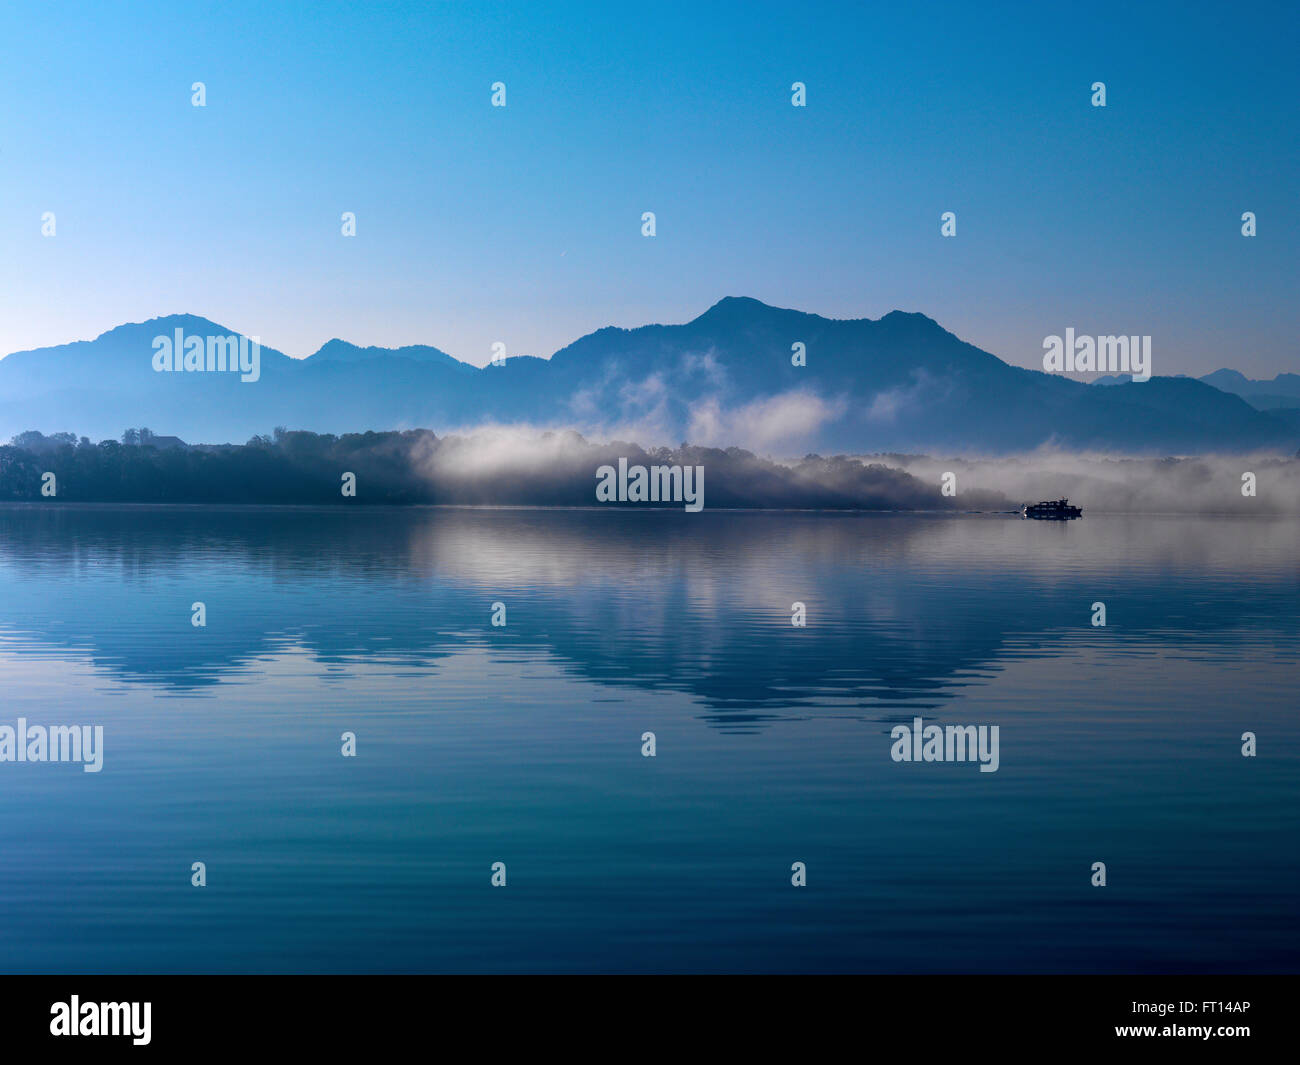 Herreninsel and mountains Hochfelln and Hochgern in morning fog, lake Chiemsee, Bavaria, Germany - Stock Image